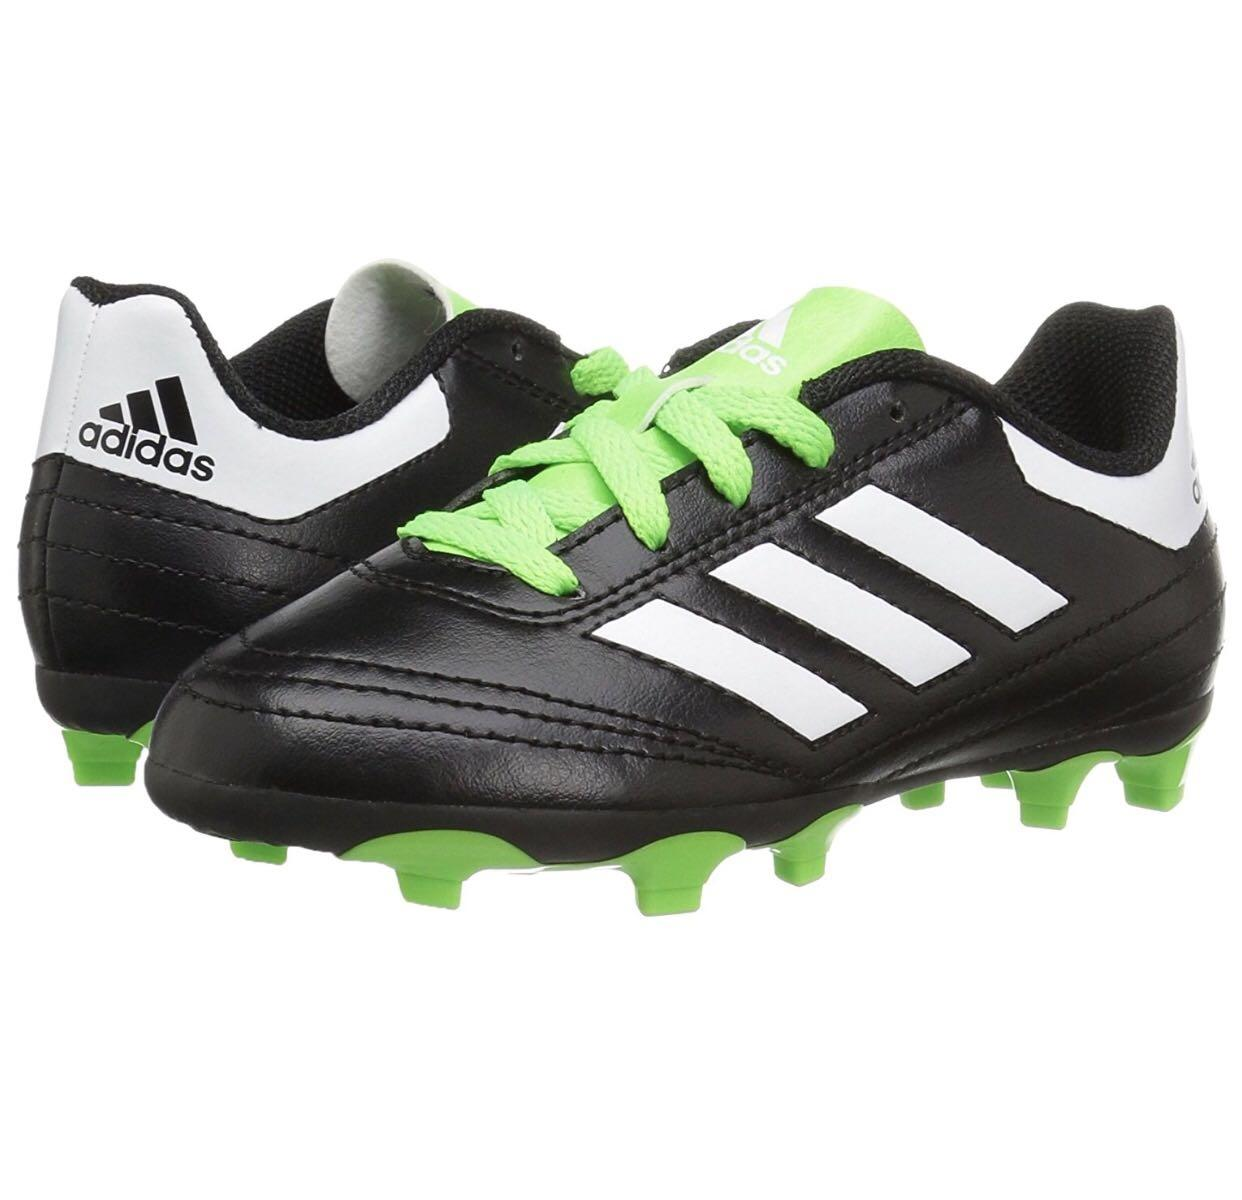 34bb041f5d3 Best Soccer Cleats - Adidas Kids  Ace Firm Ground Cleats Soccer Shoes - Size  4.5 for sale in Chula Vista